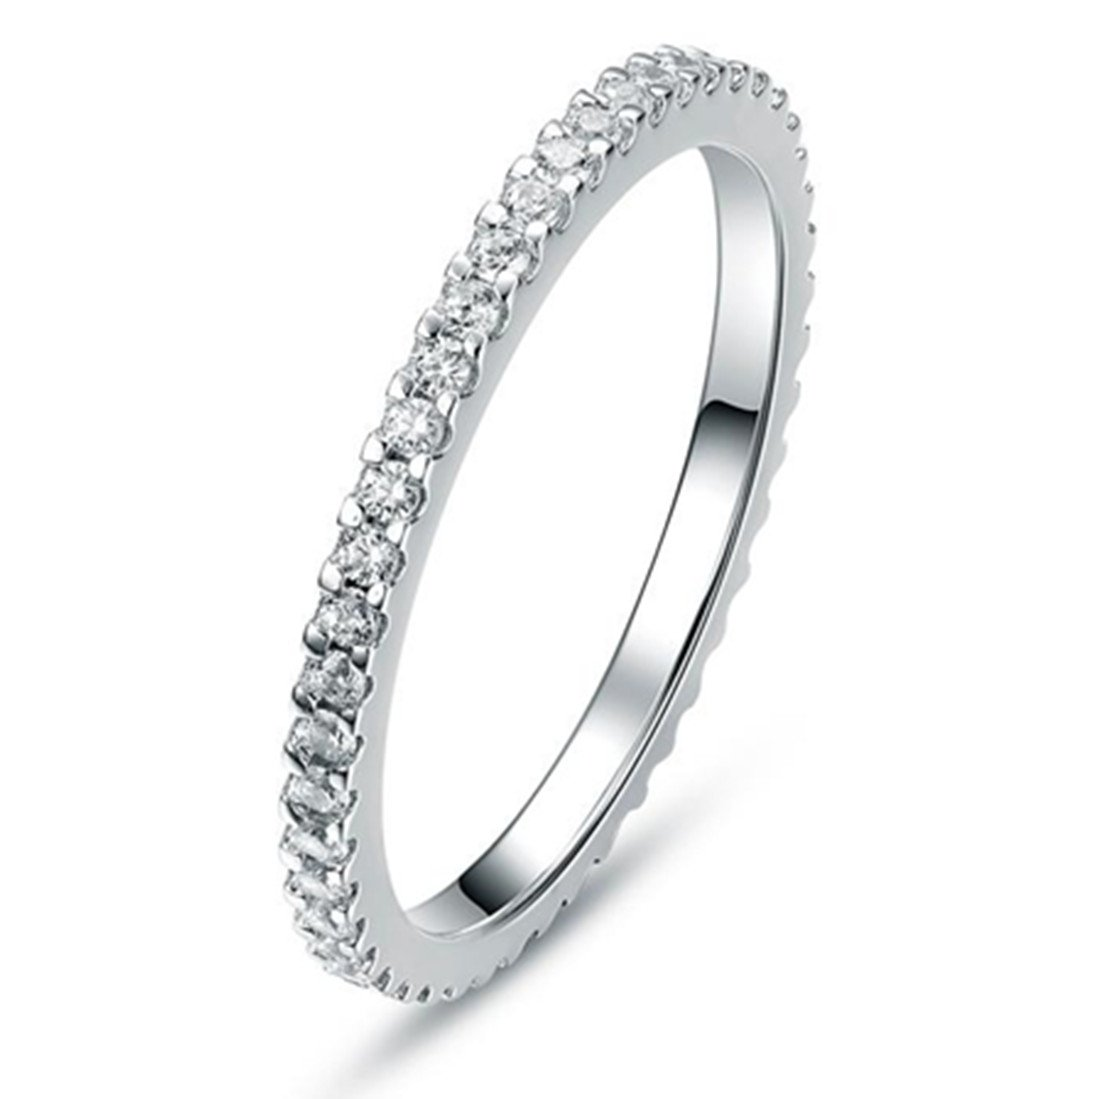 c4c9a7bfe487a THREE MAN 0.55 CT Eternity Ring Wedding Band NSCD Simulated Diamond  Infinity Ring for Women